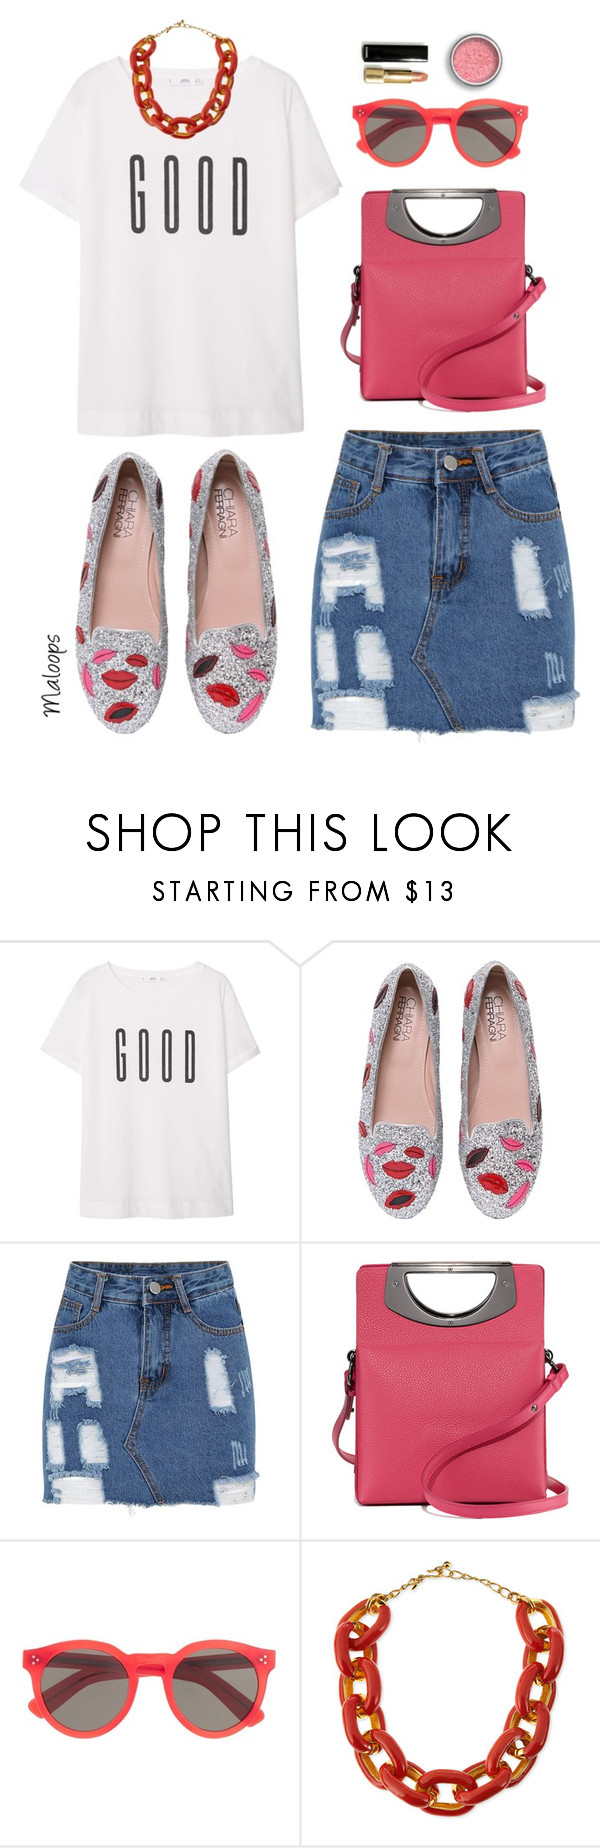 """~And I'm feeling good~"" by maloops ❤ liked on Polyvore featuring MANGO, Chiara Ferragni, Christian Louboutin, Illesteva, Kenneth Jay Lane, summerstyle, Tshirt and slogantshirts"